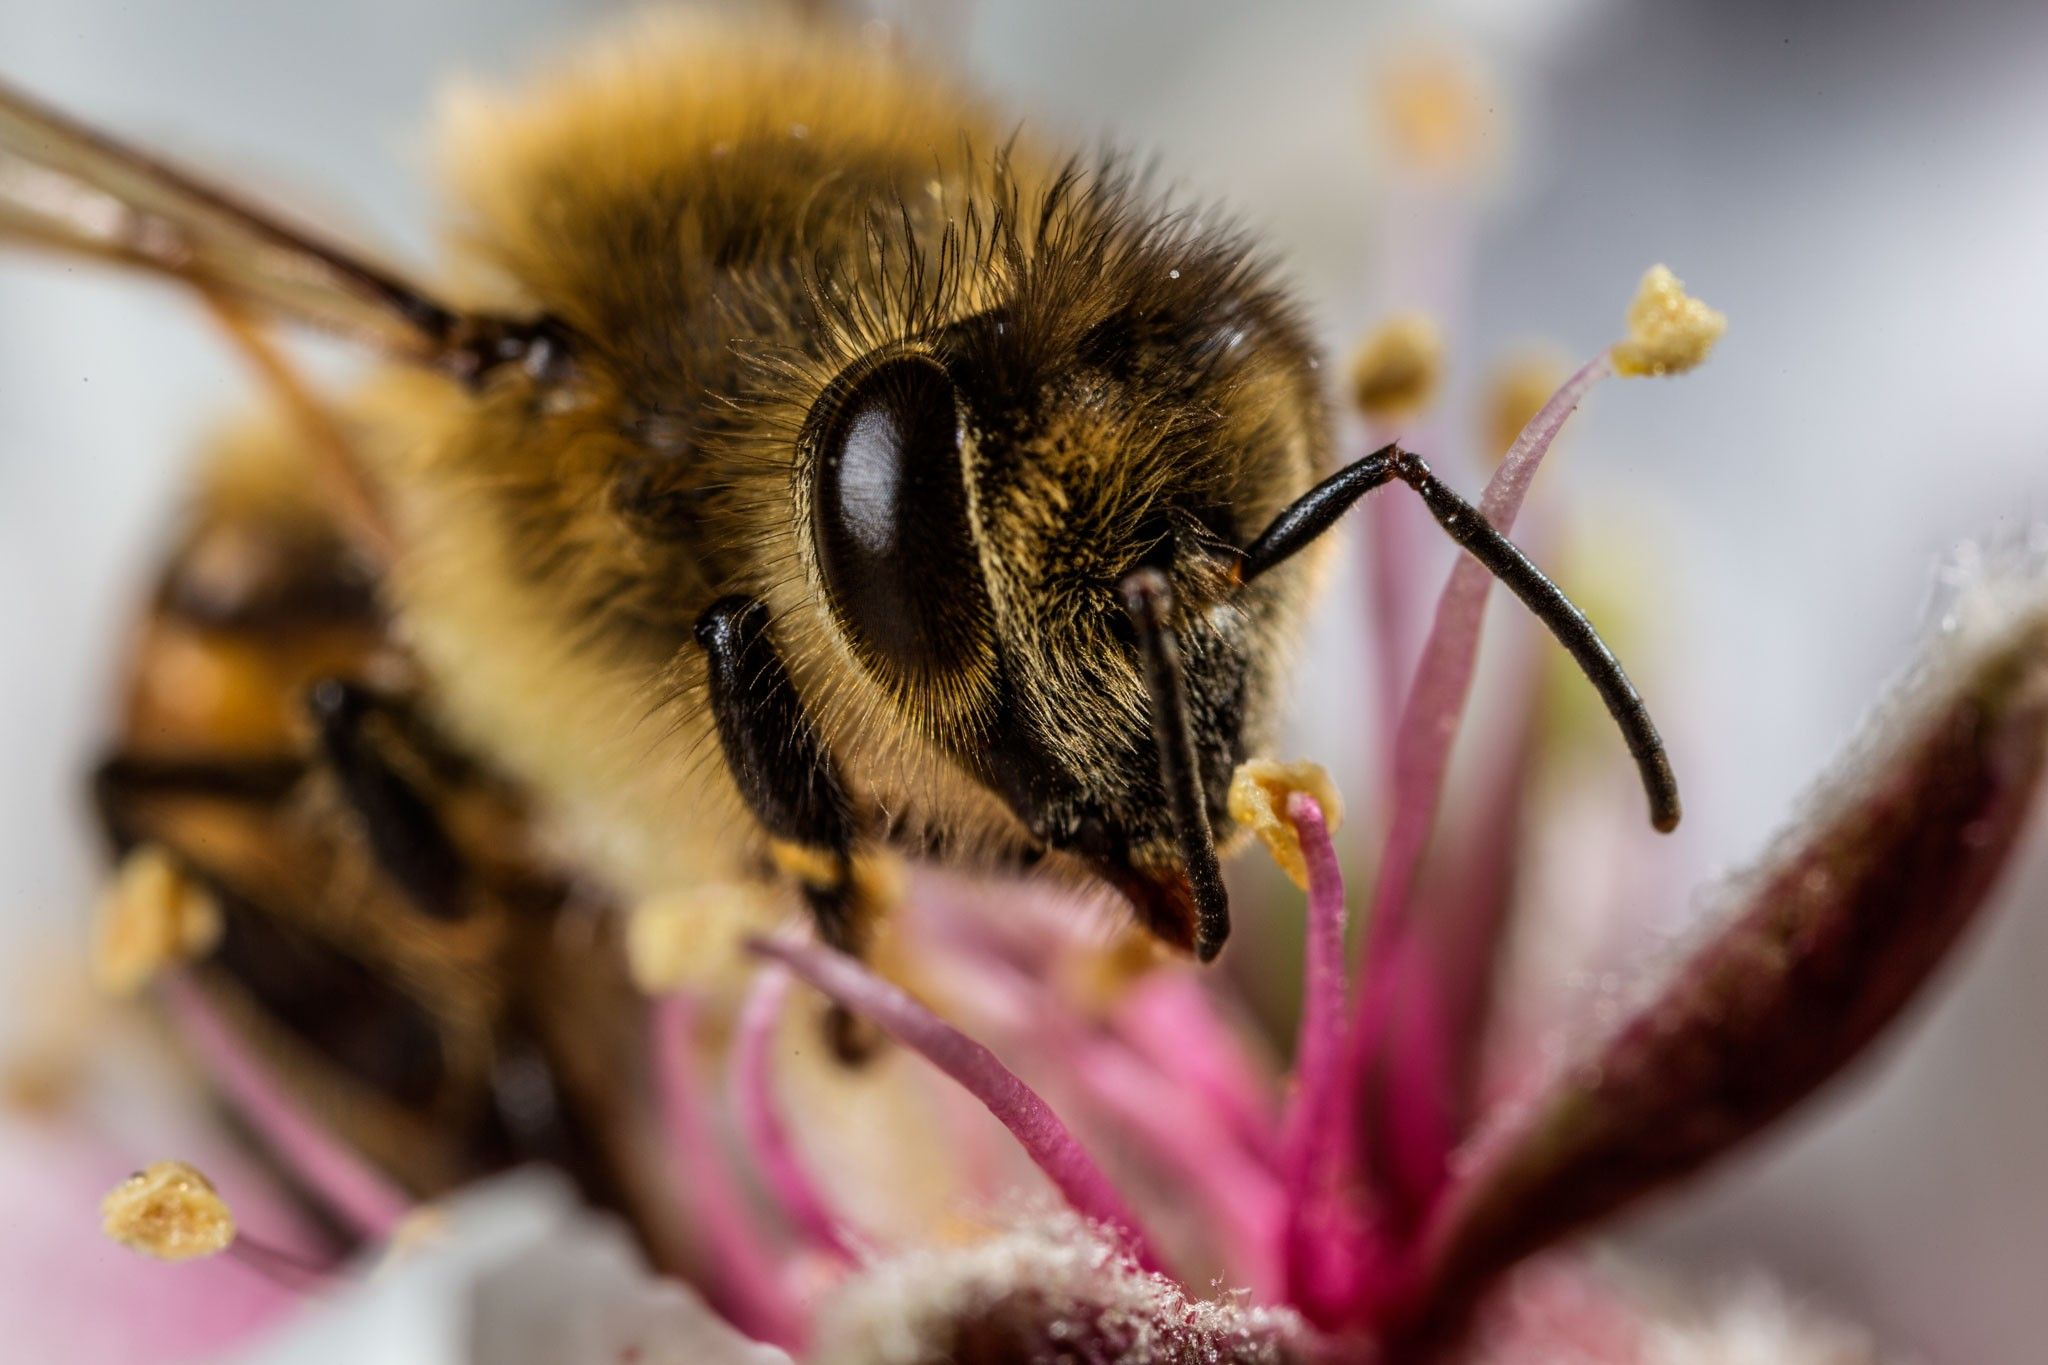 10 sweet photos of honeybees | National Geographic